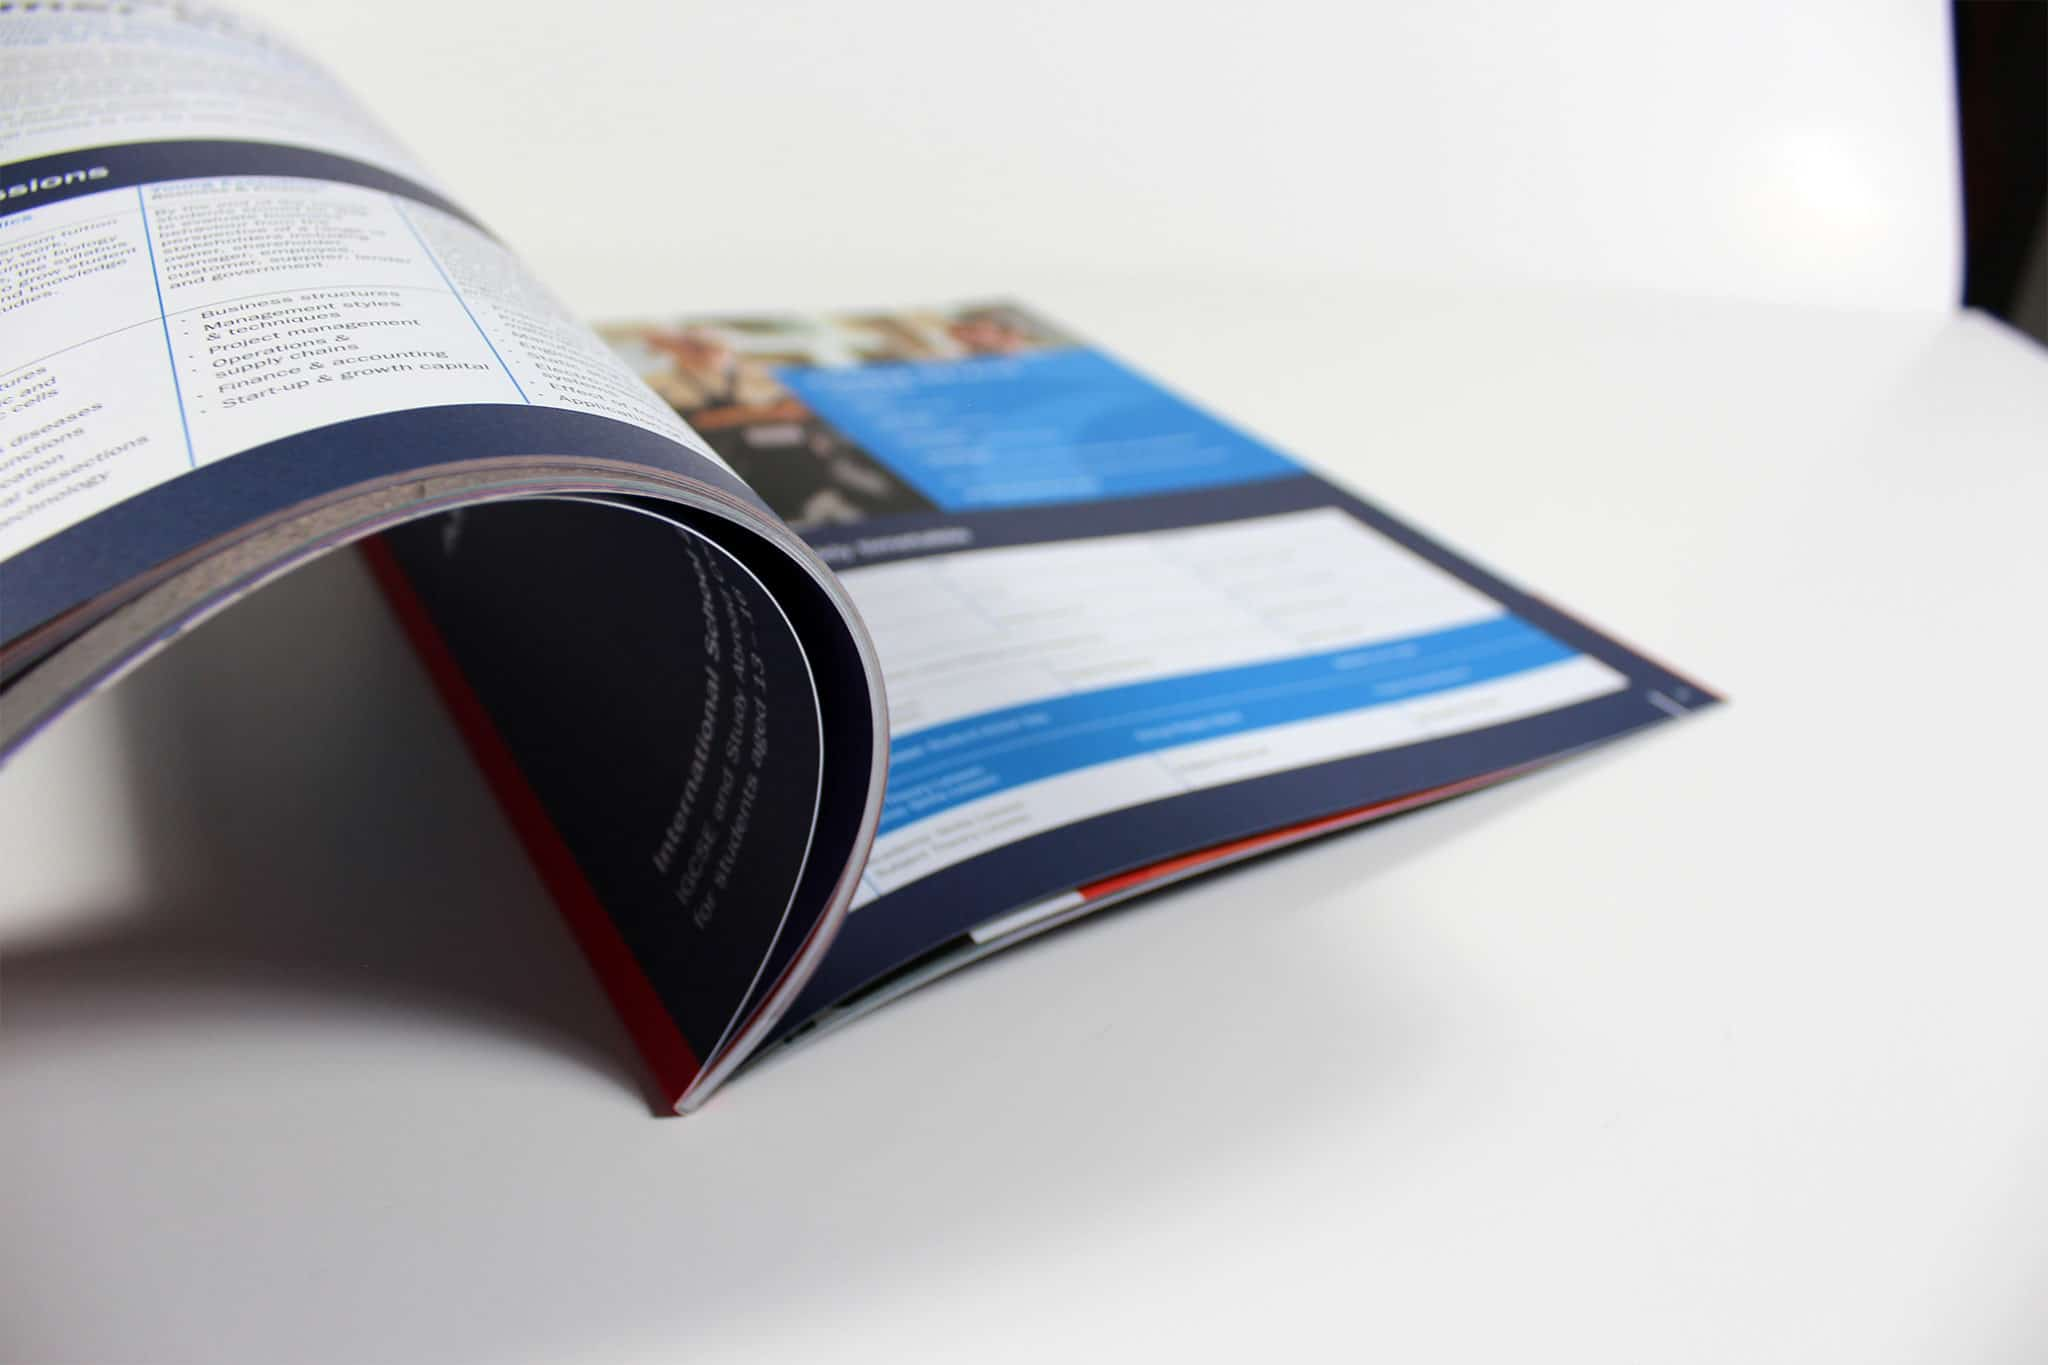 Printed School Prospectus with pages open